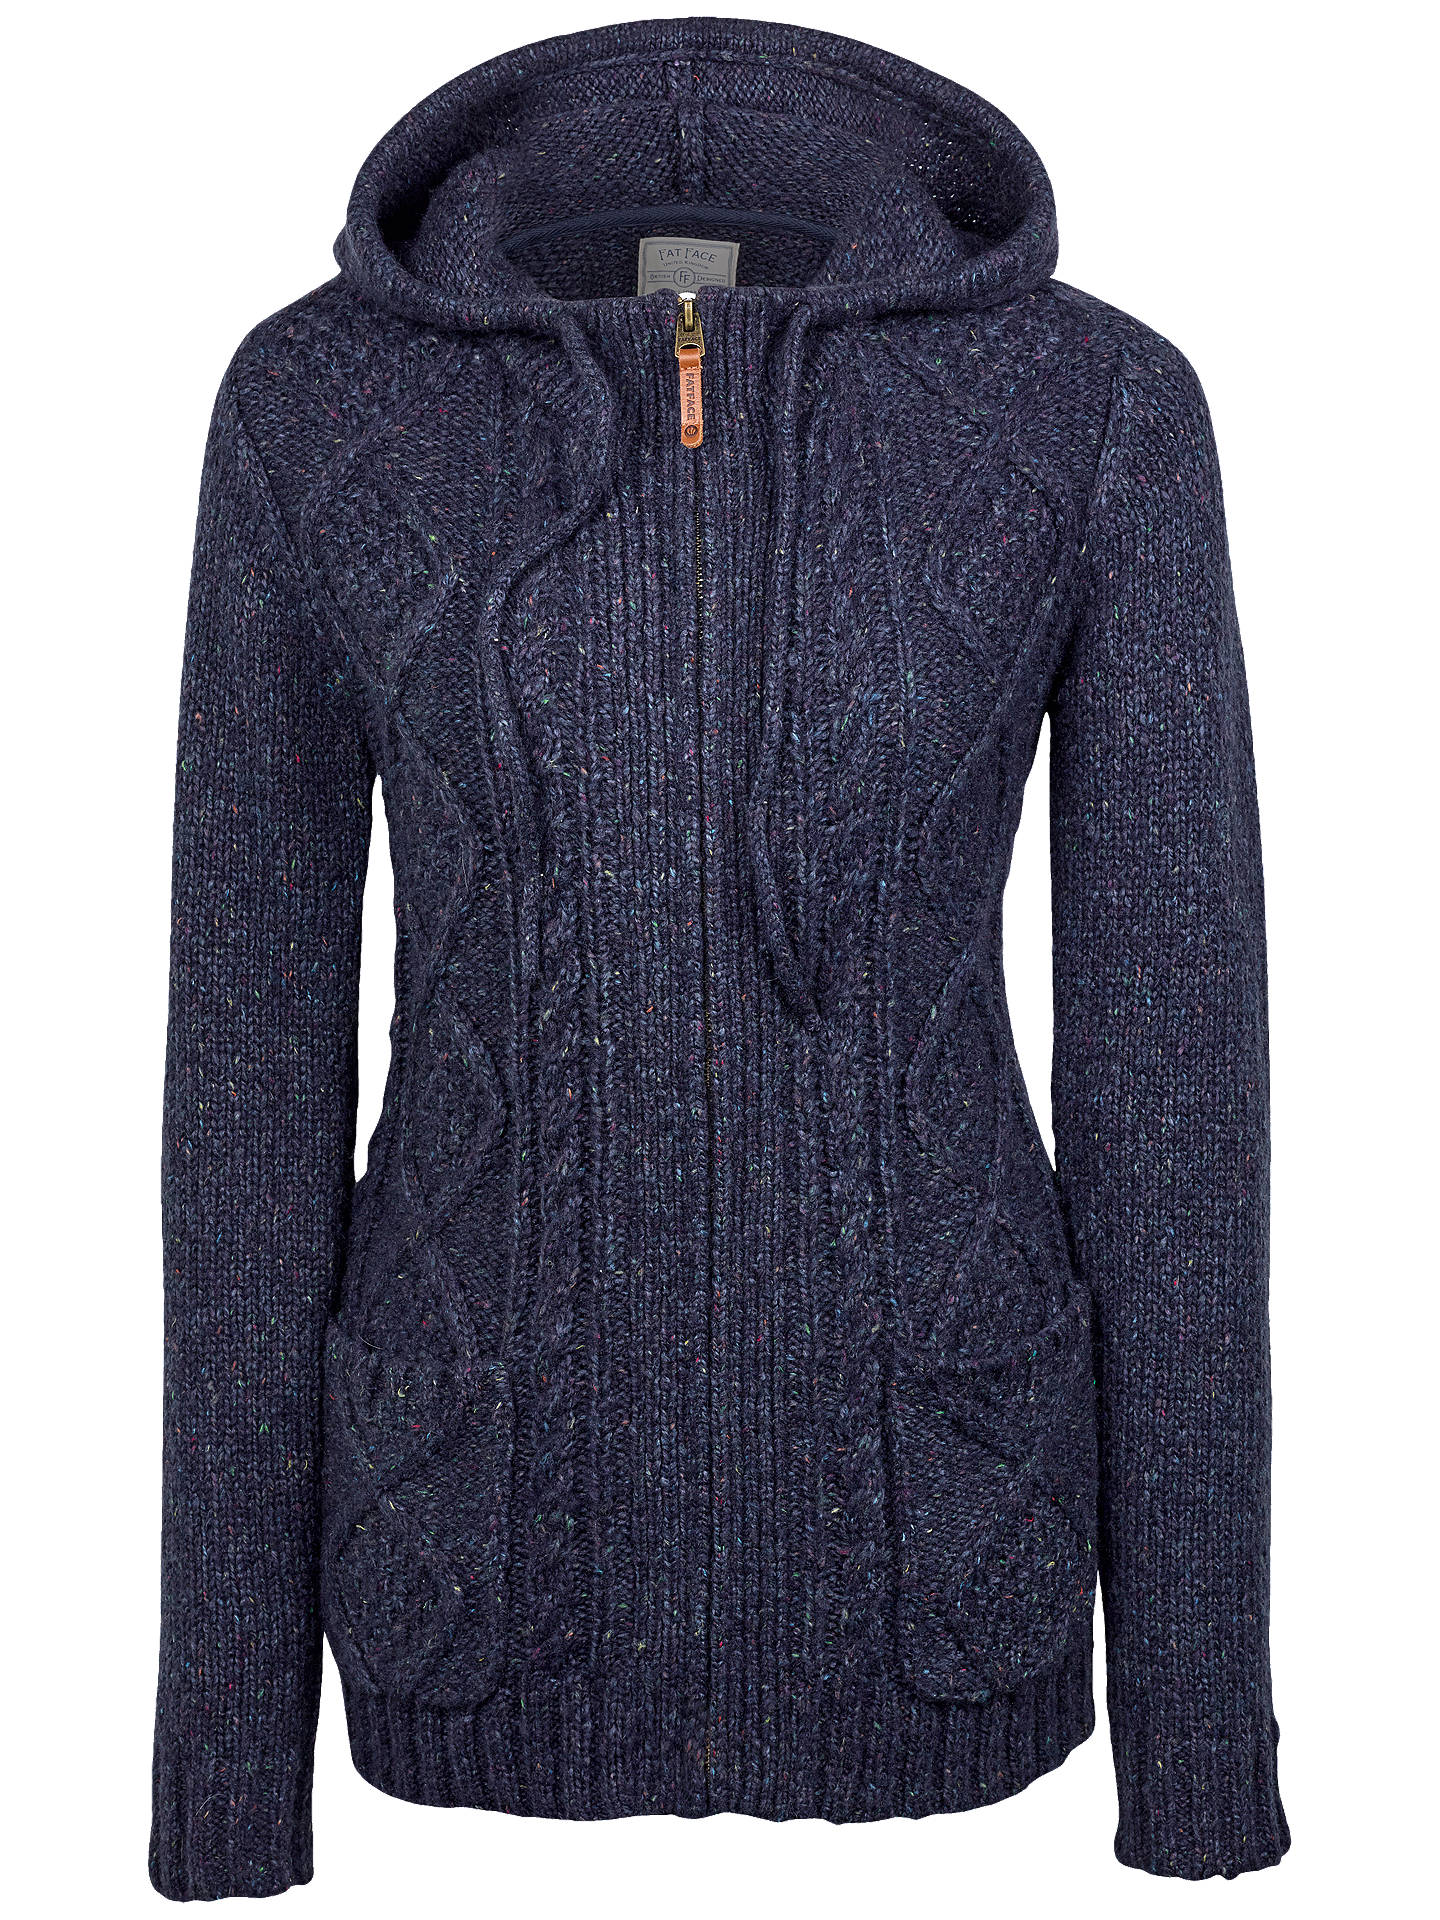 BuyFat Face Alicia Knit Hoodie, Navy, 8 Online at johnlewis.com